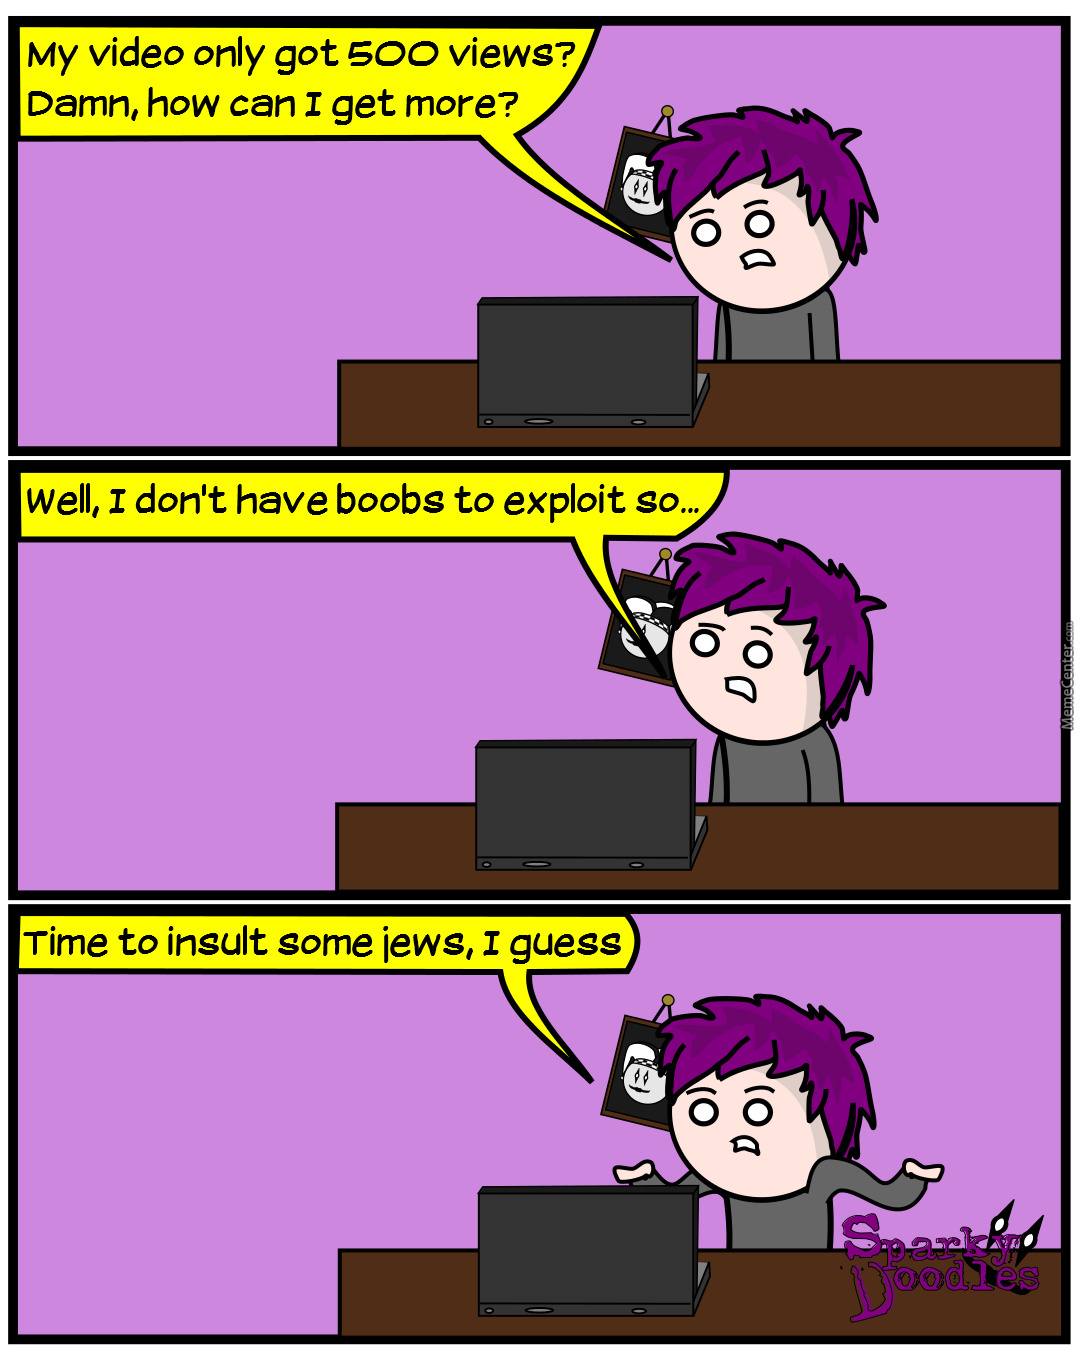 Sparky Doodles: How To Be Youtube Famous